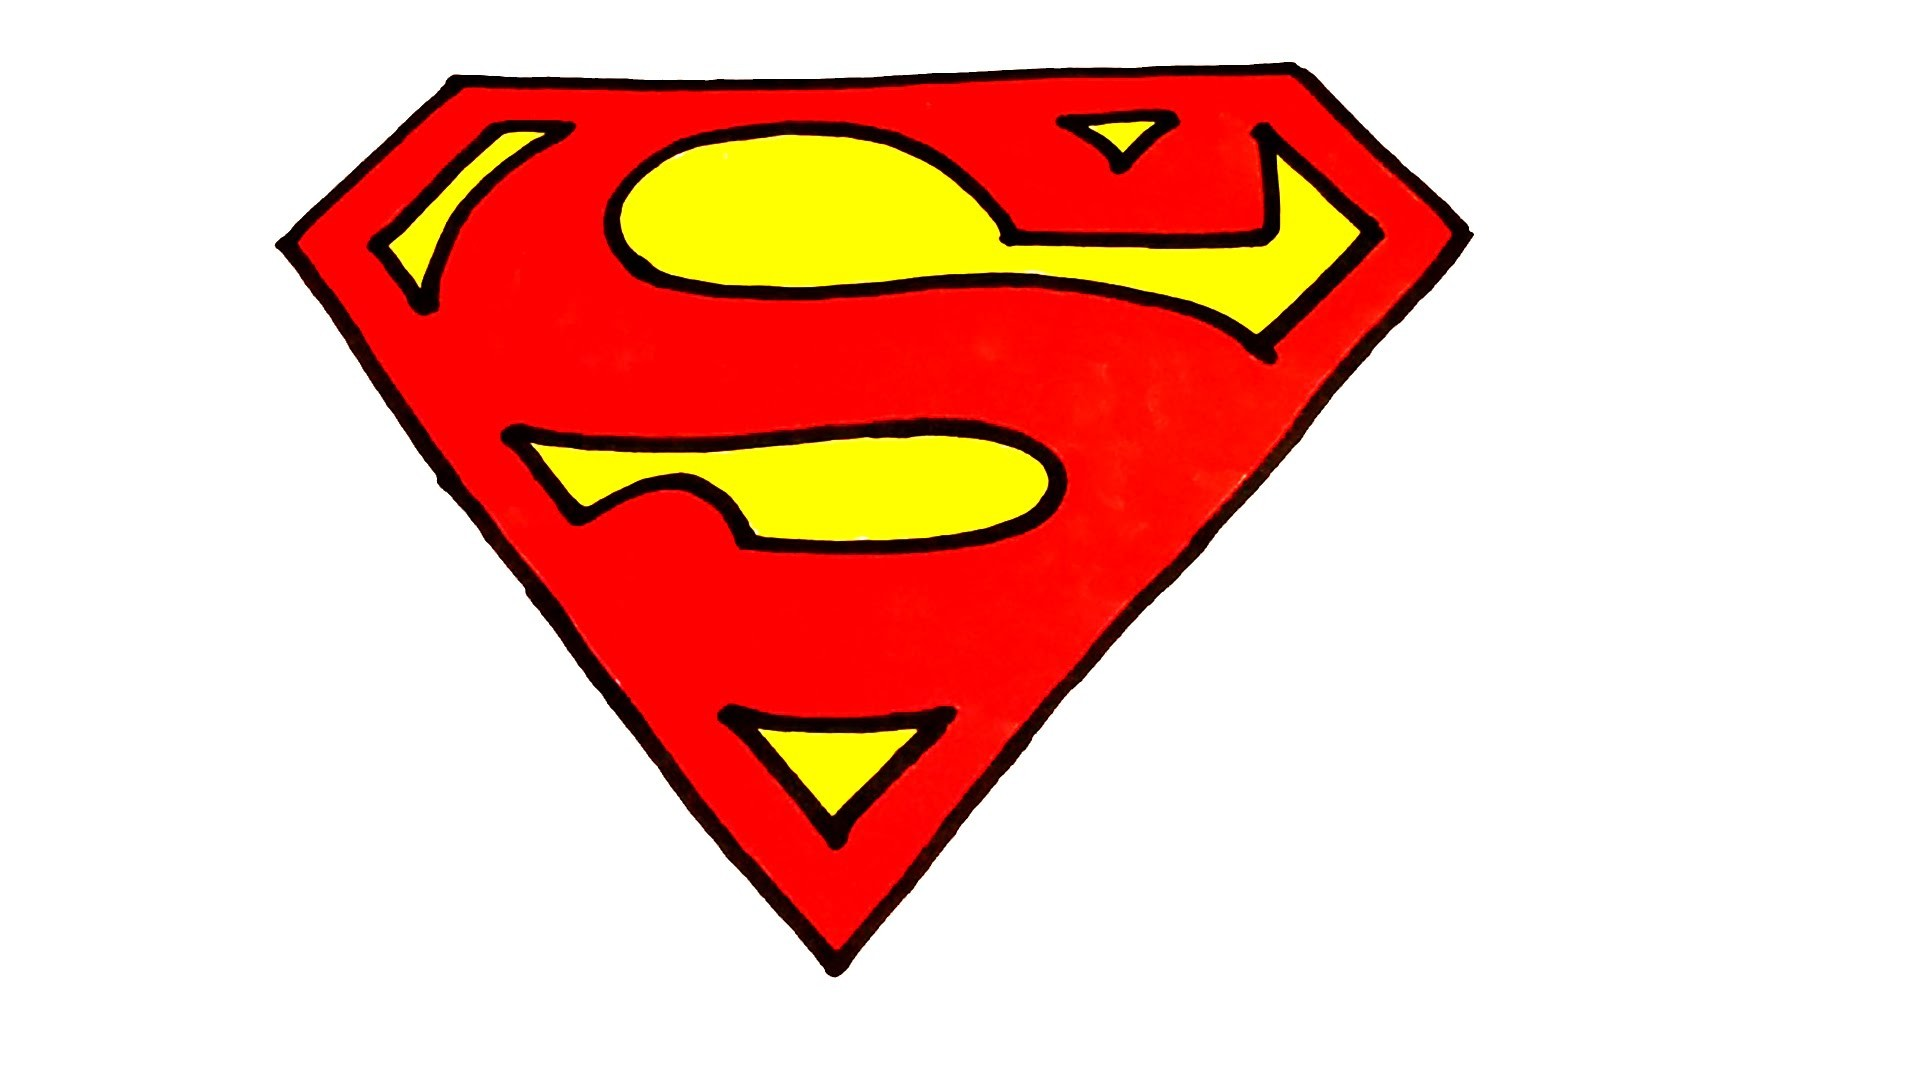 how to draw superman logo step by step easy superheroes logos draw